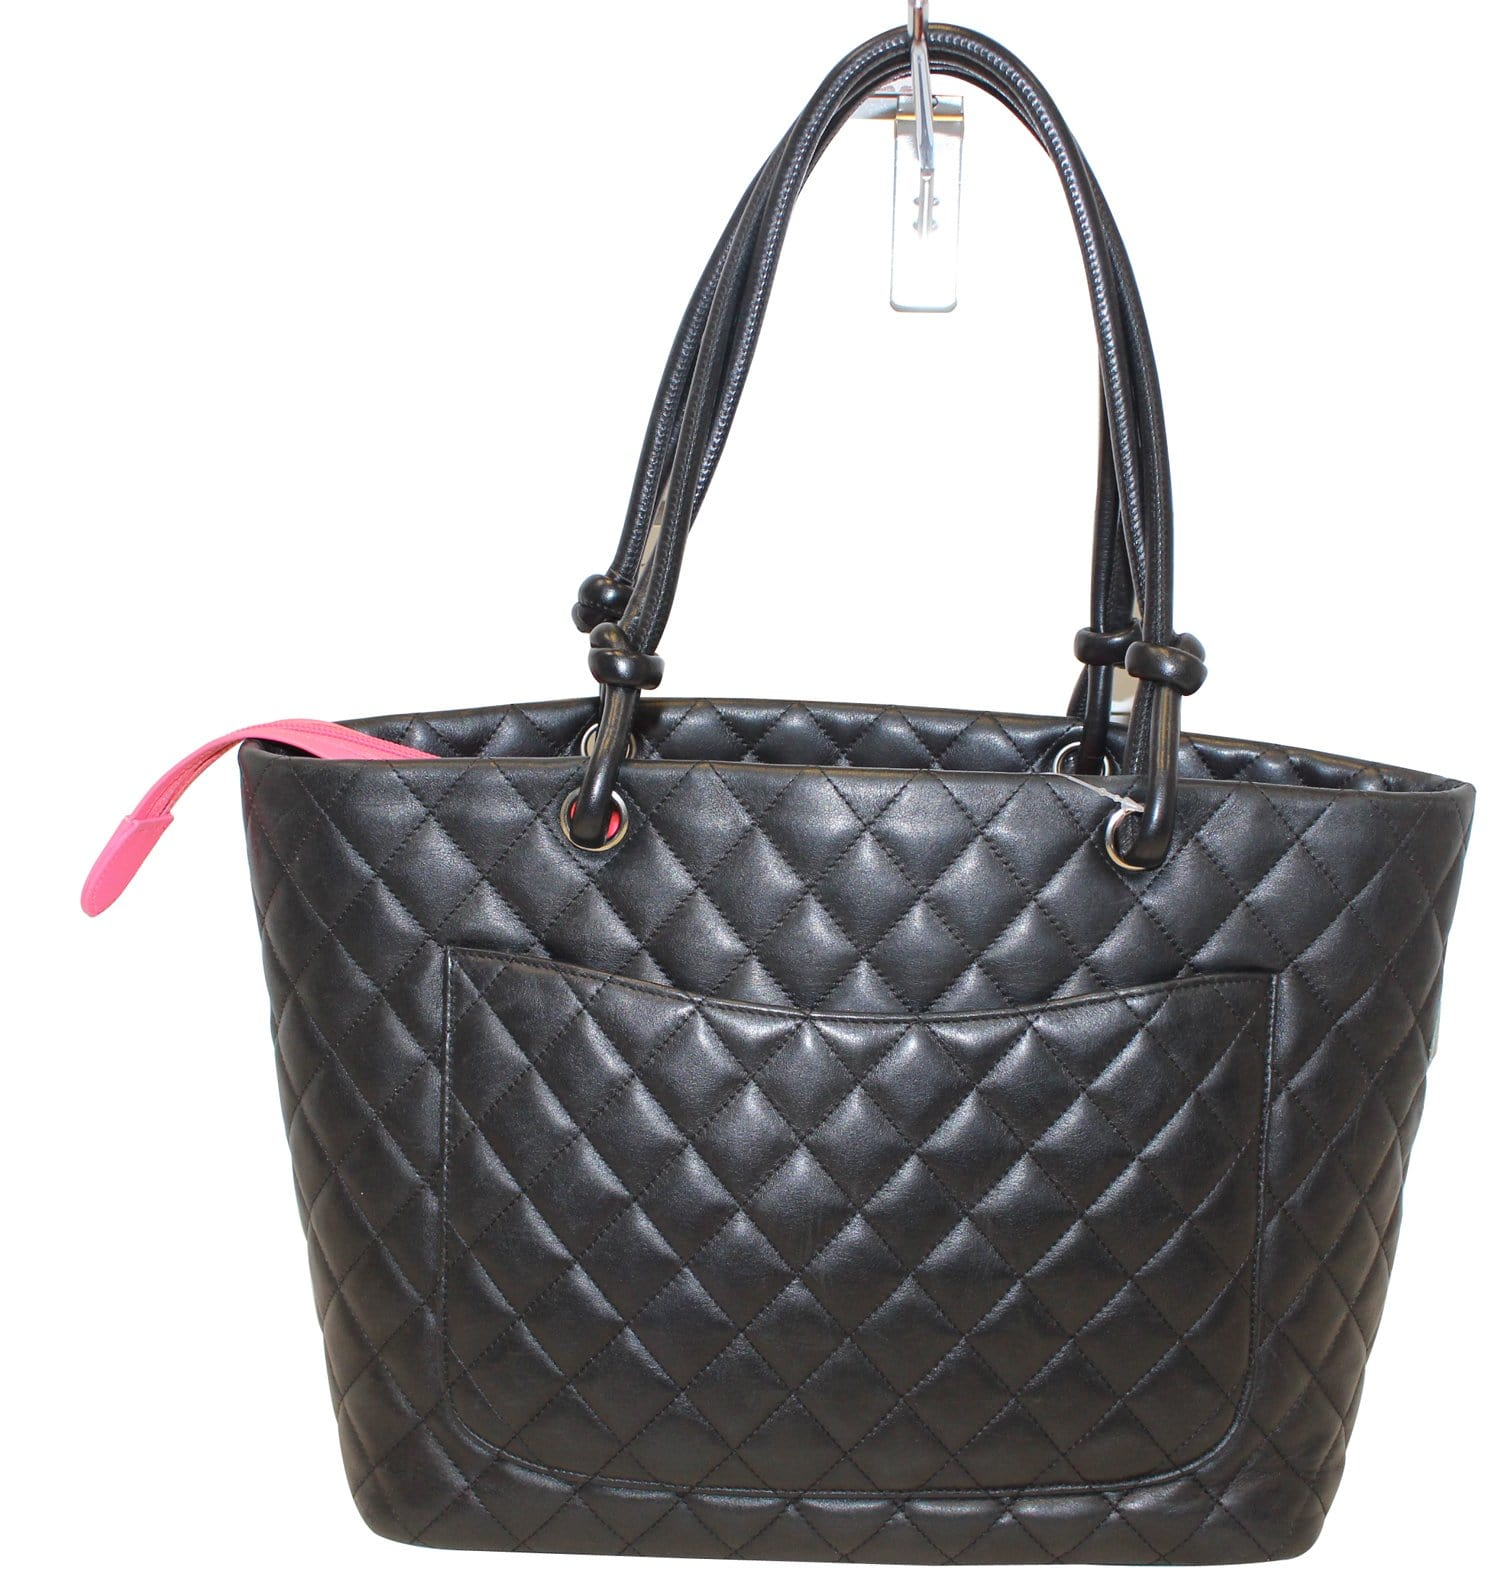 75c2bc334f1d CHANEL Black Quilted Leather Large Cambon Tote Bag